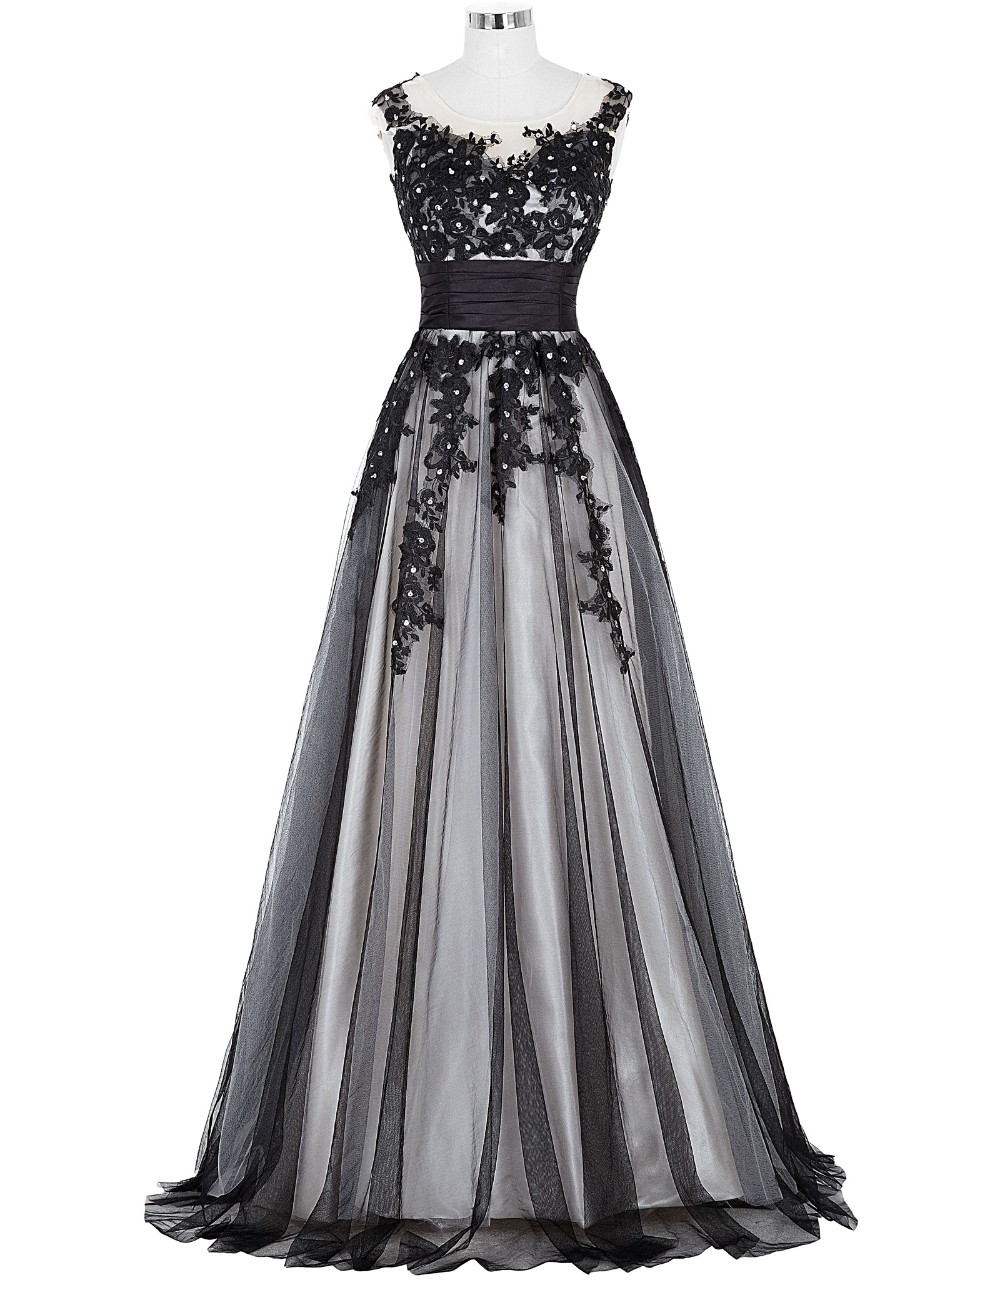 Grace Karin Long Prom Dress 2018 Elegant Black Appliques Sleeveless Soft Tulle Satin Real Picture Robes De Soiree Prom Dresses 6